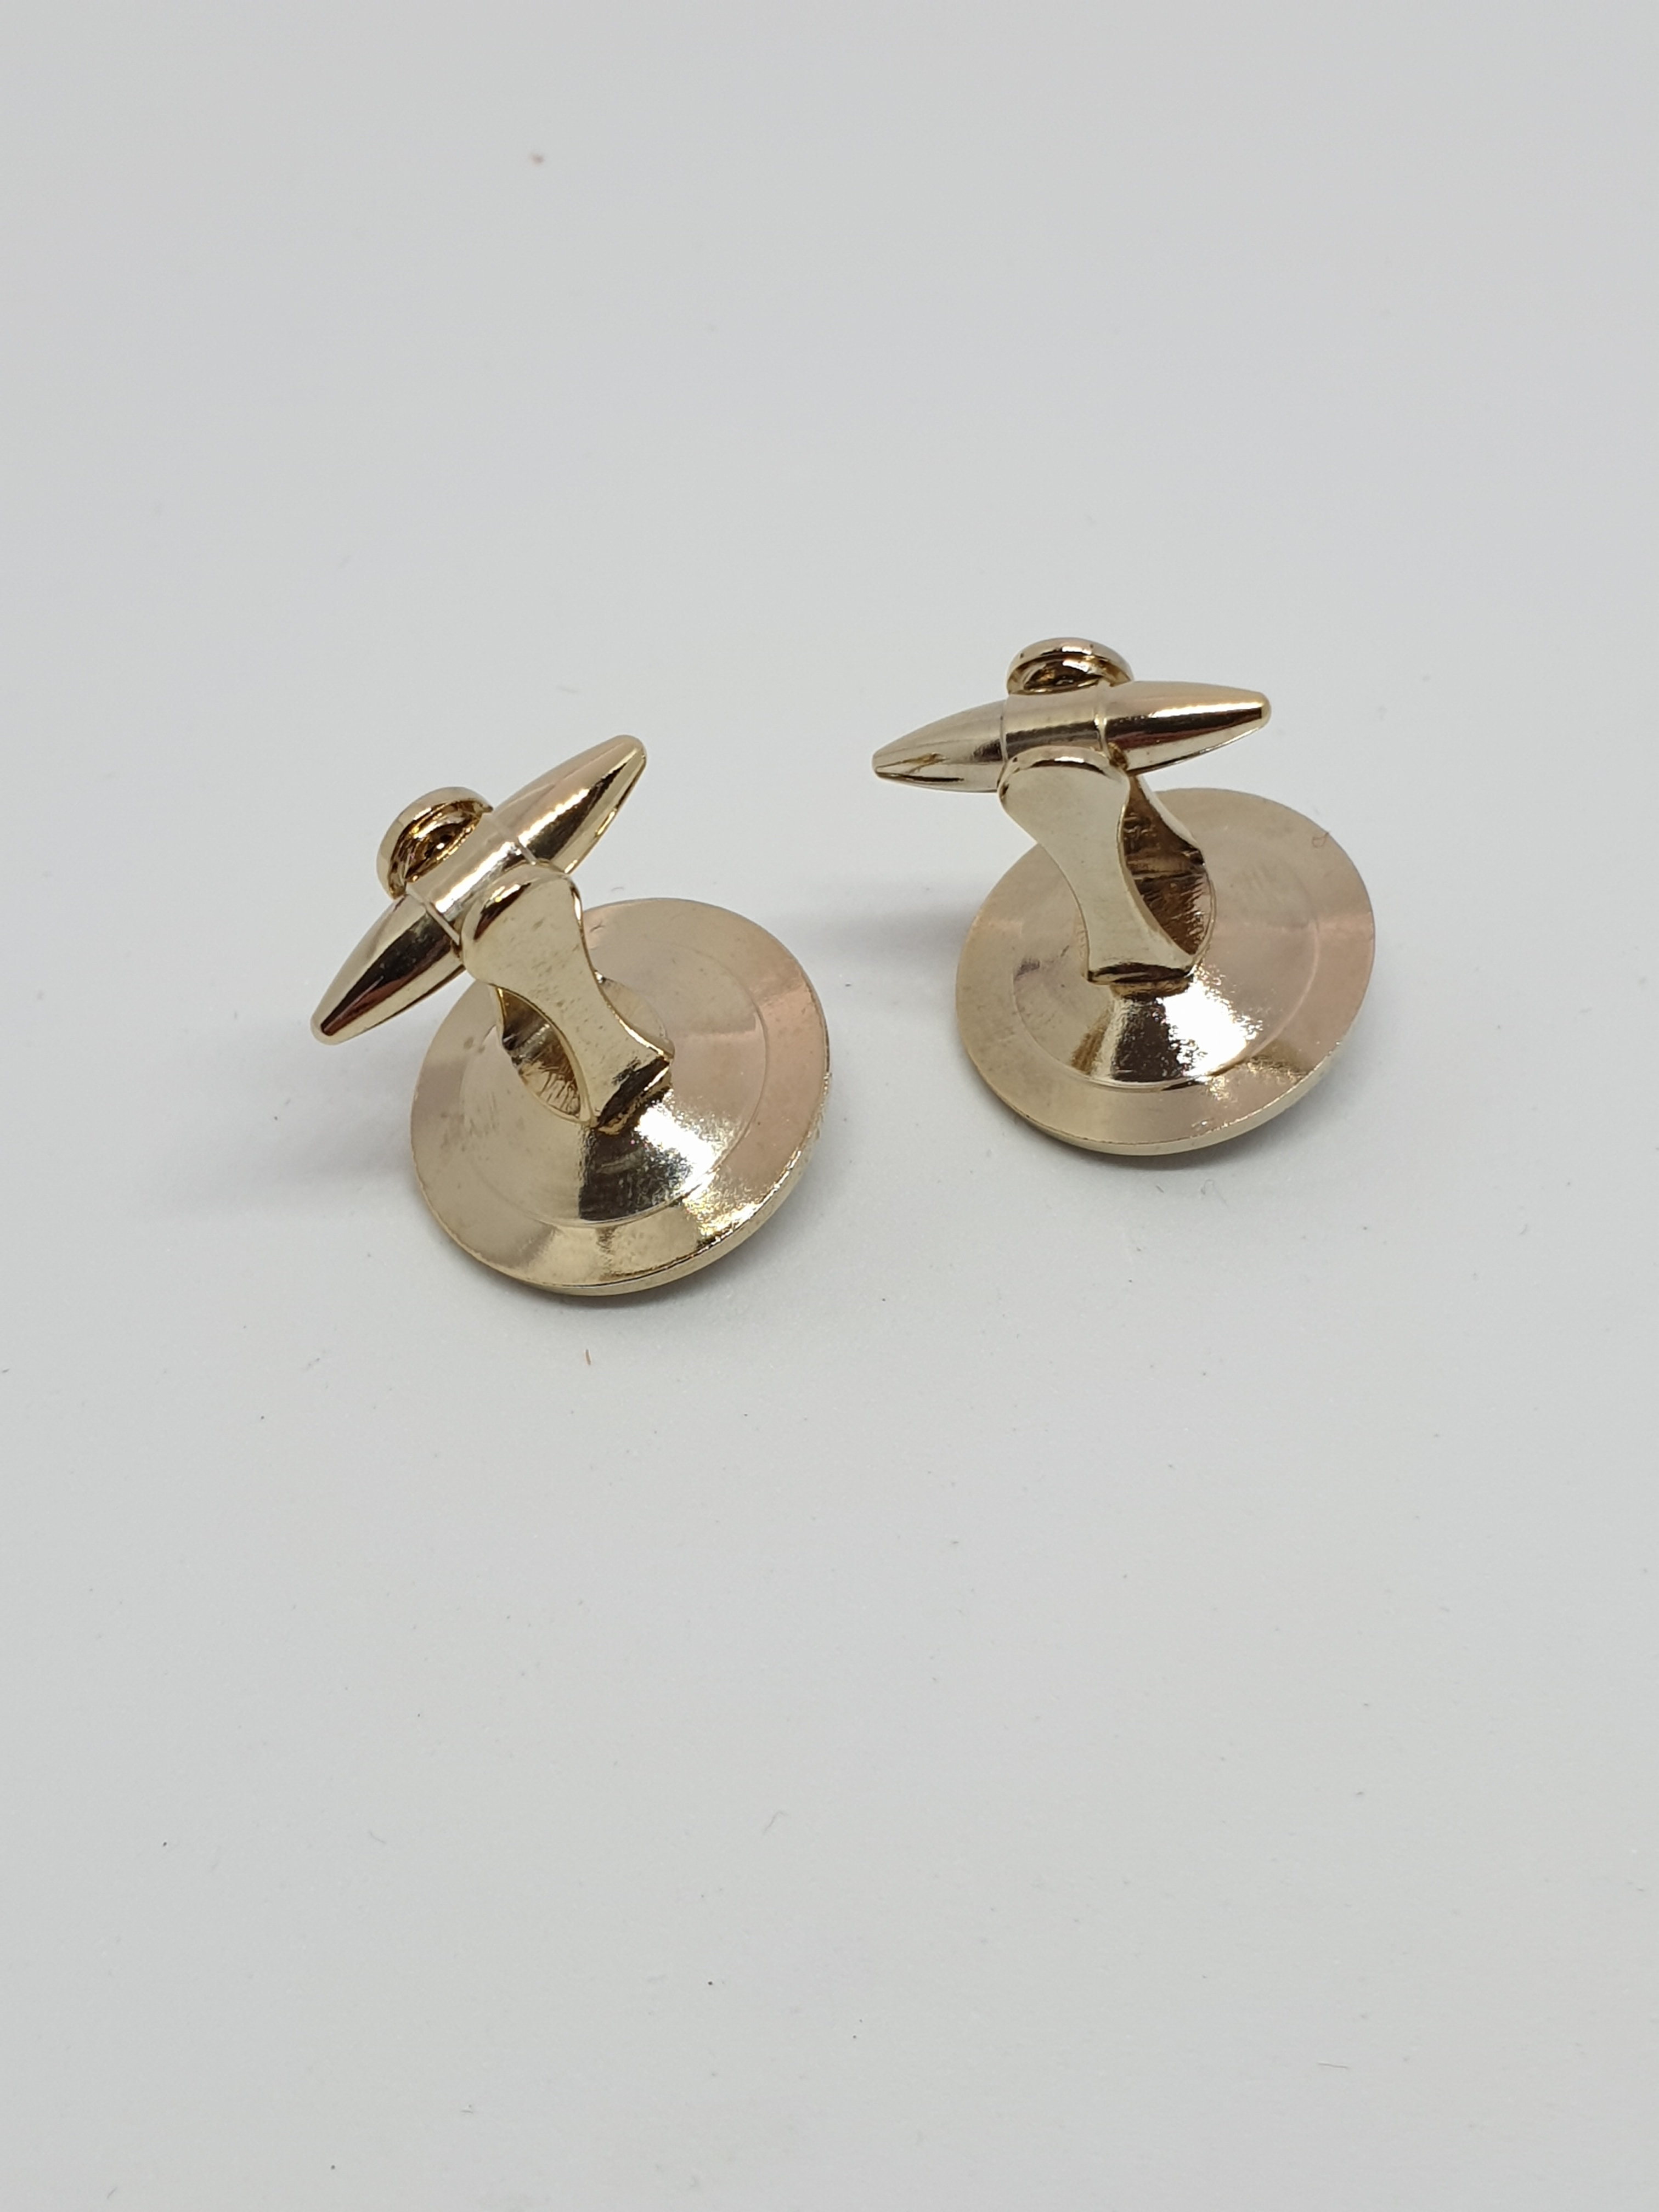 Vintage 1950s STRATTON ENGLAND cufflink and tie pin set | Eligius Jewellery